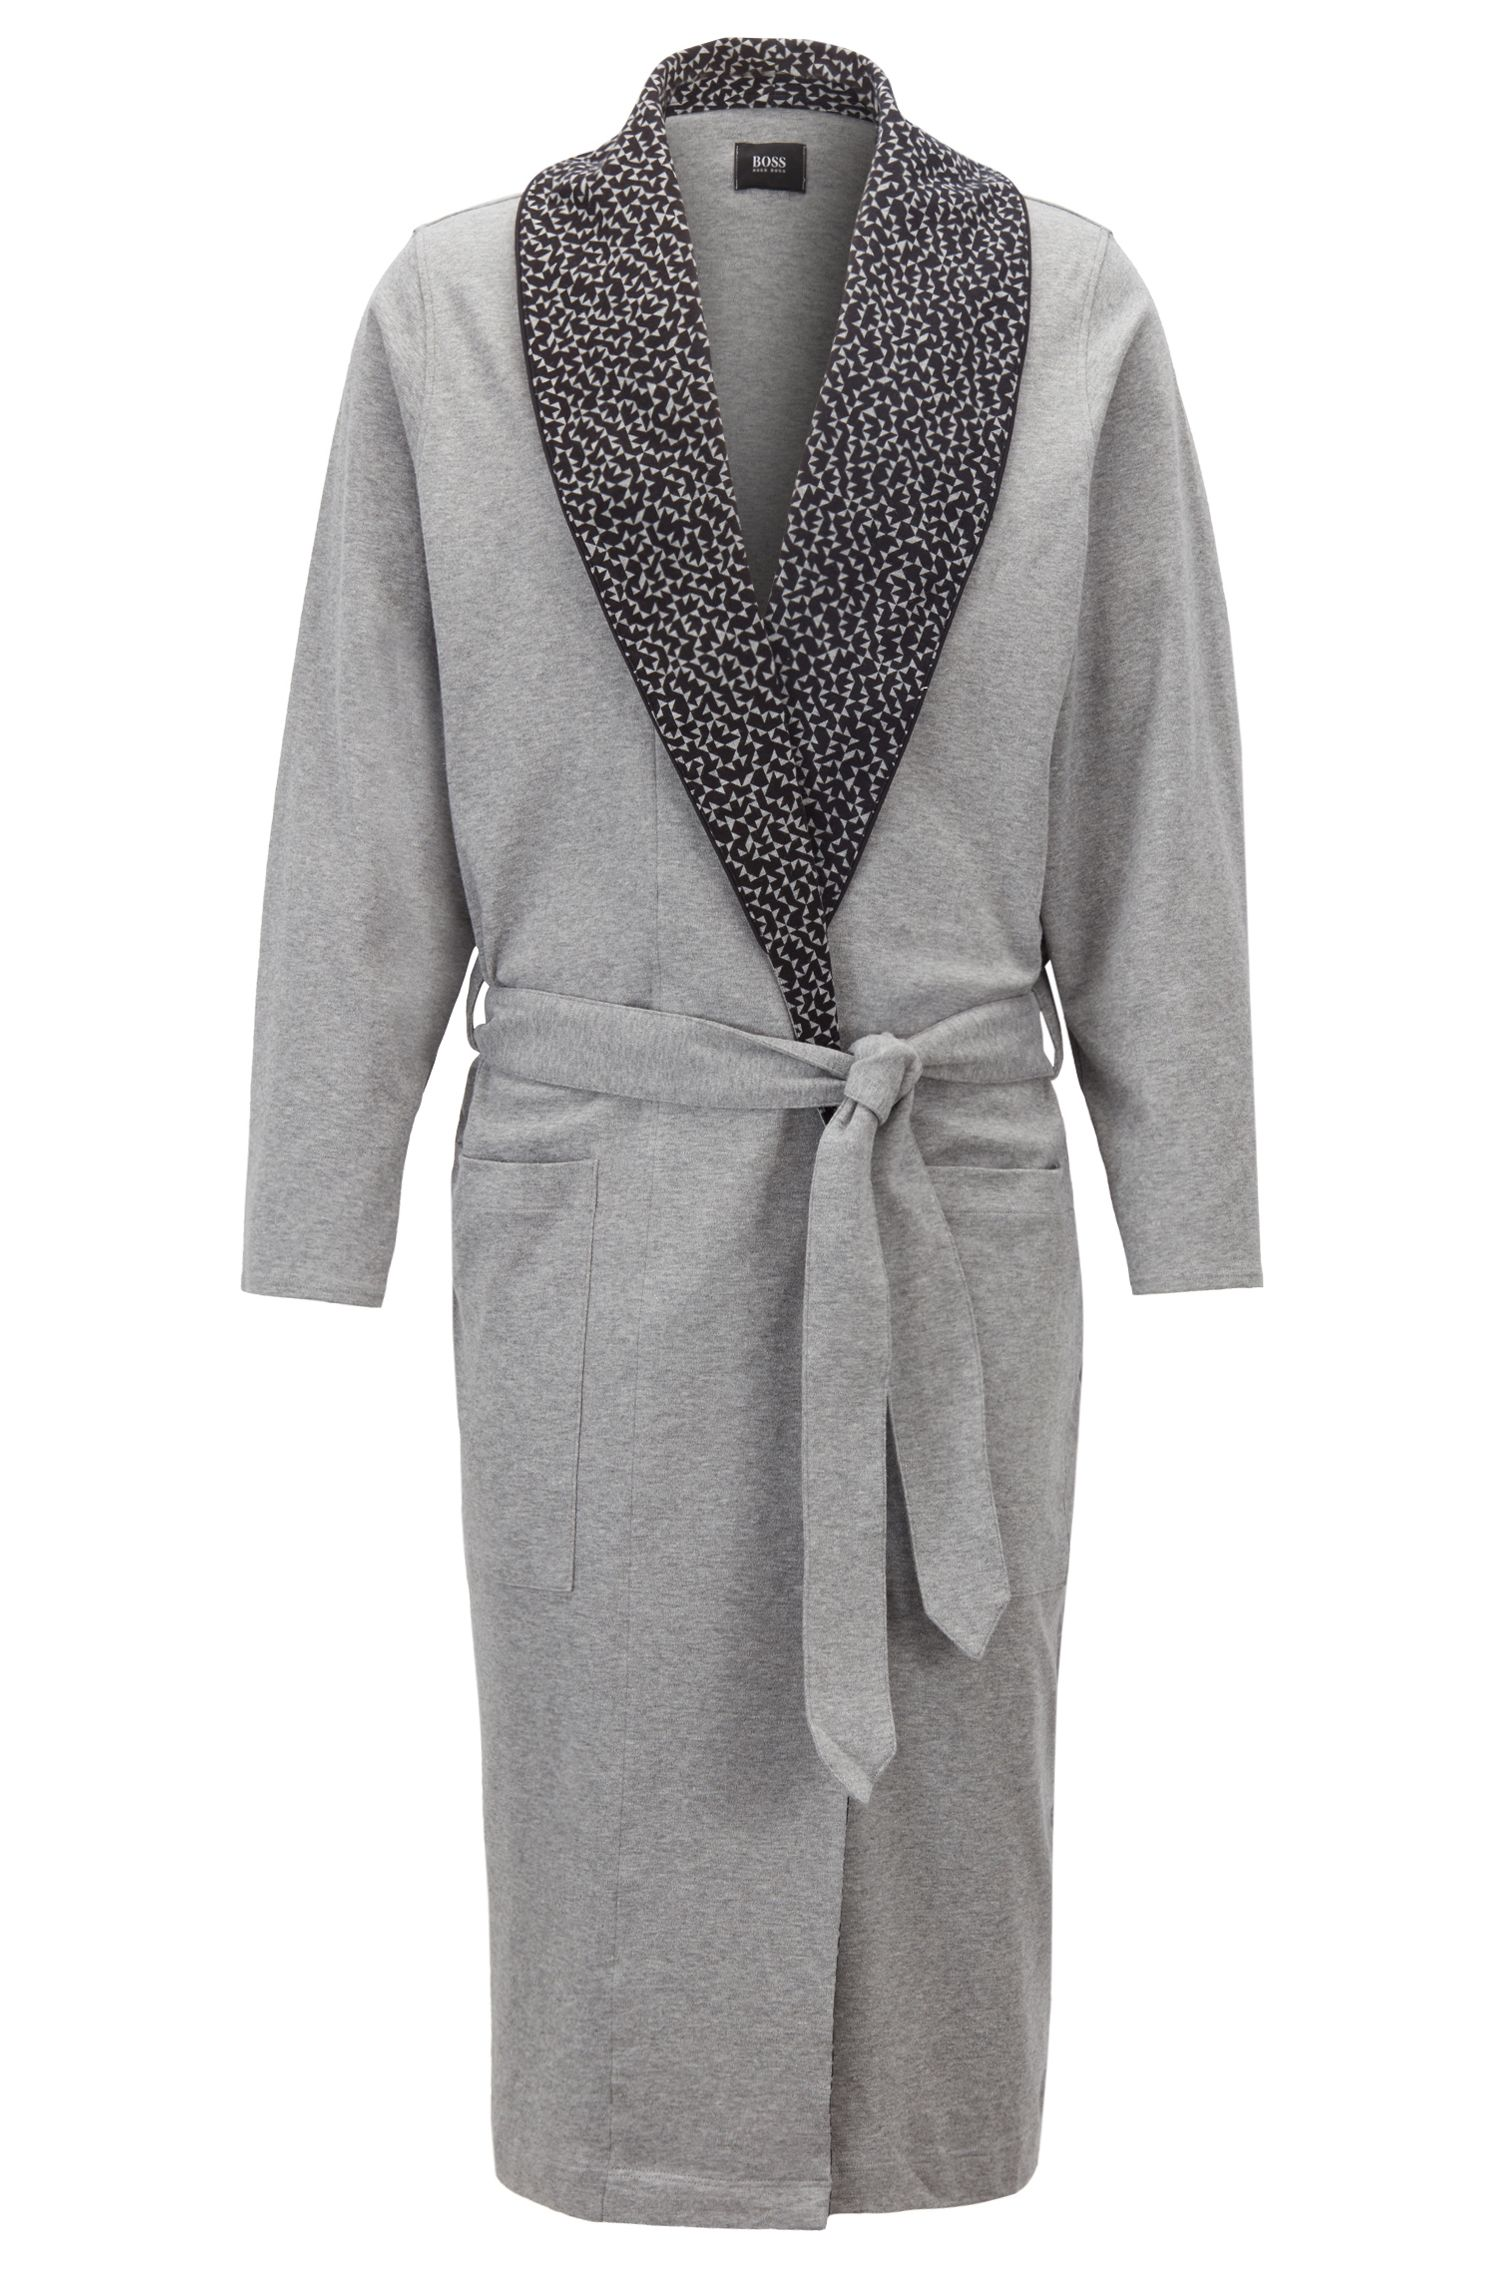 Dressing gown with lapel print inspired by Anni Albers